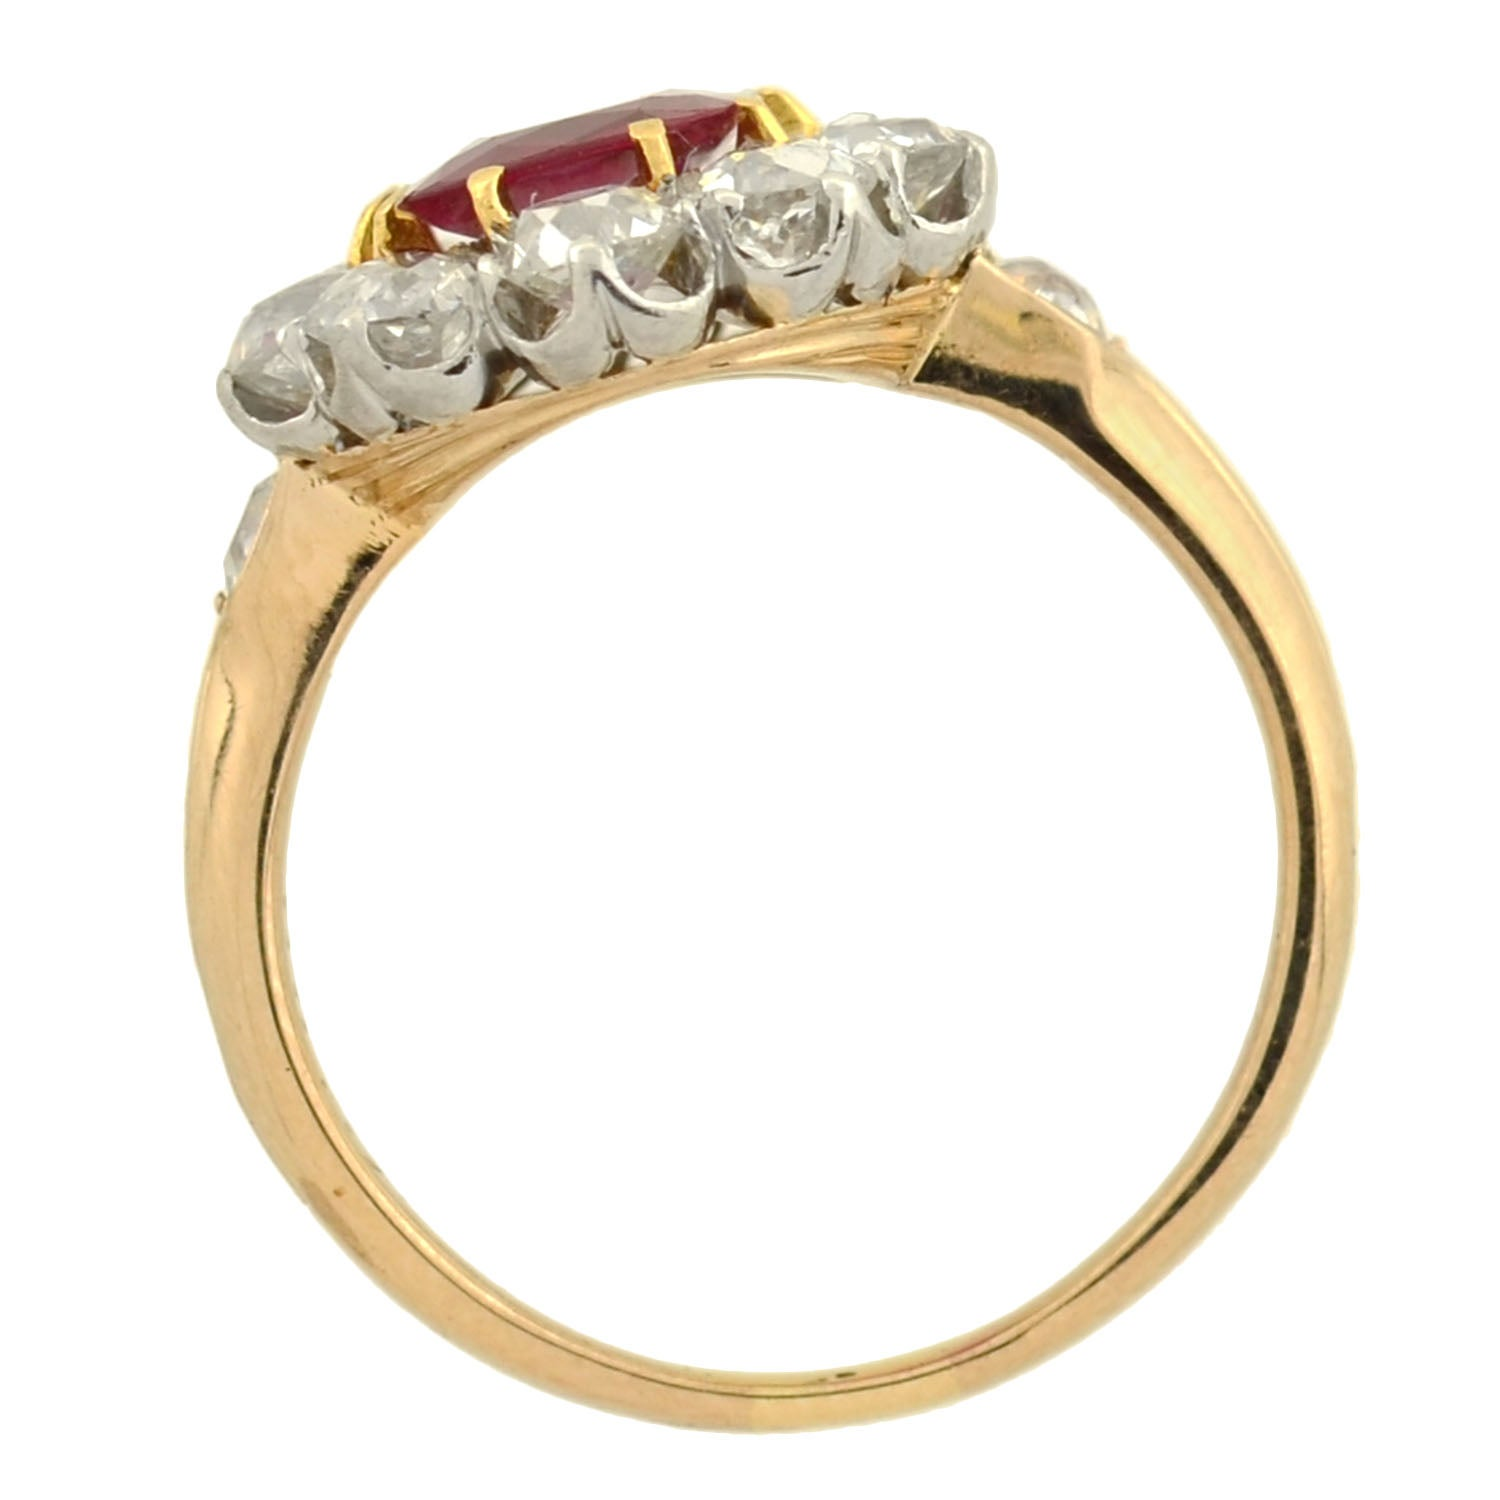 ring ruby london contemporary engagement halo finest natural rings jewellery handmade gold rose diamond product in the